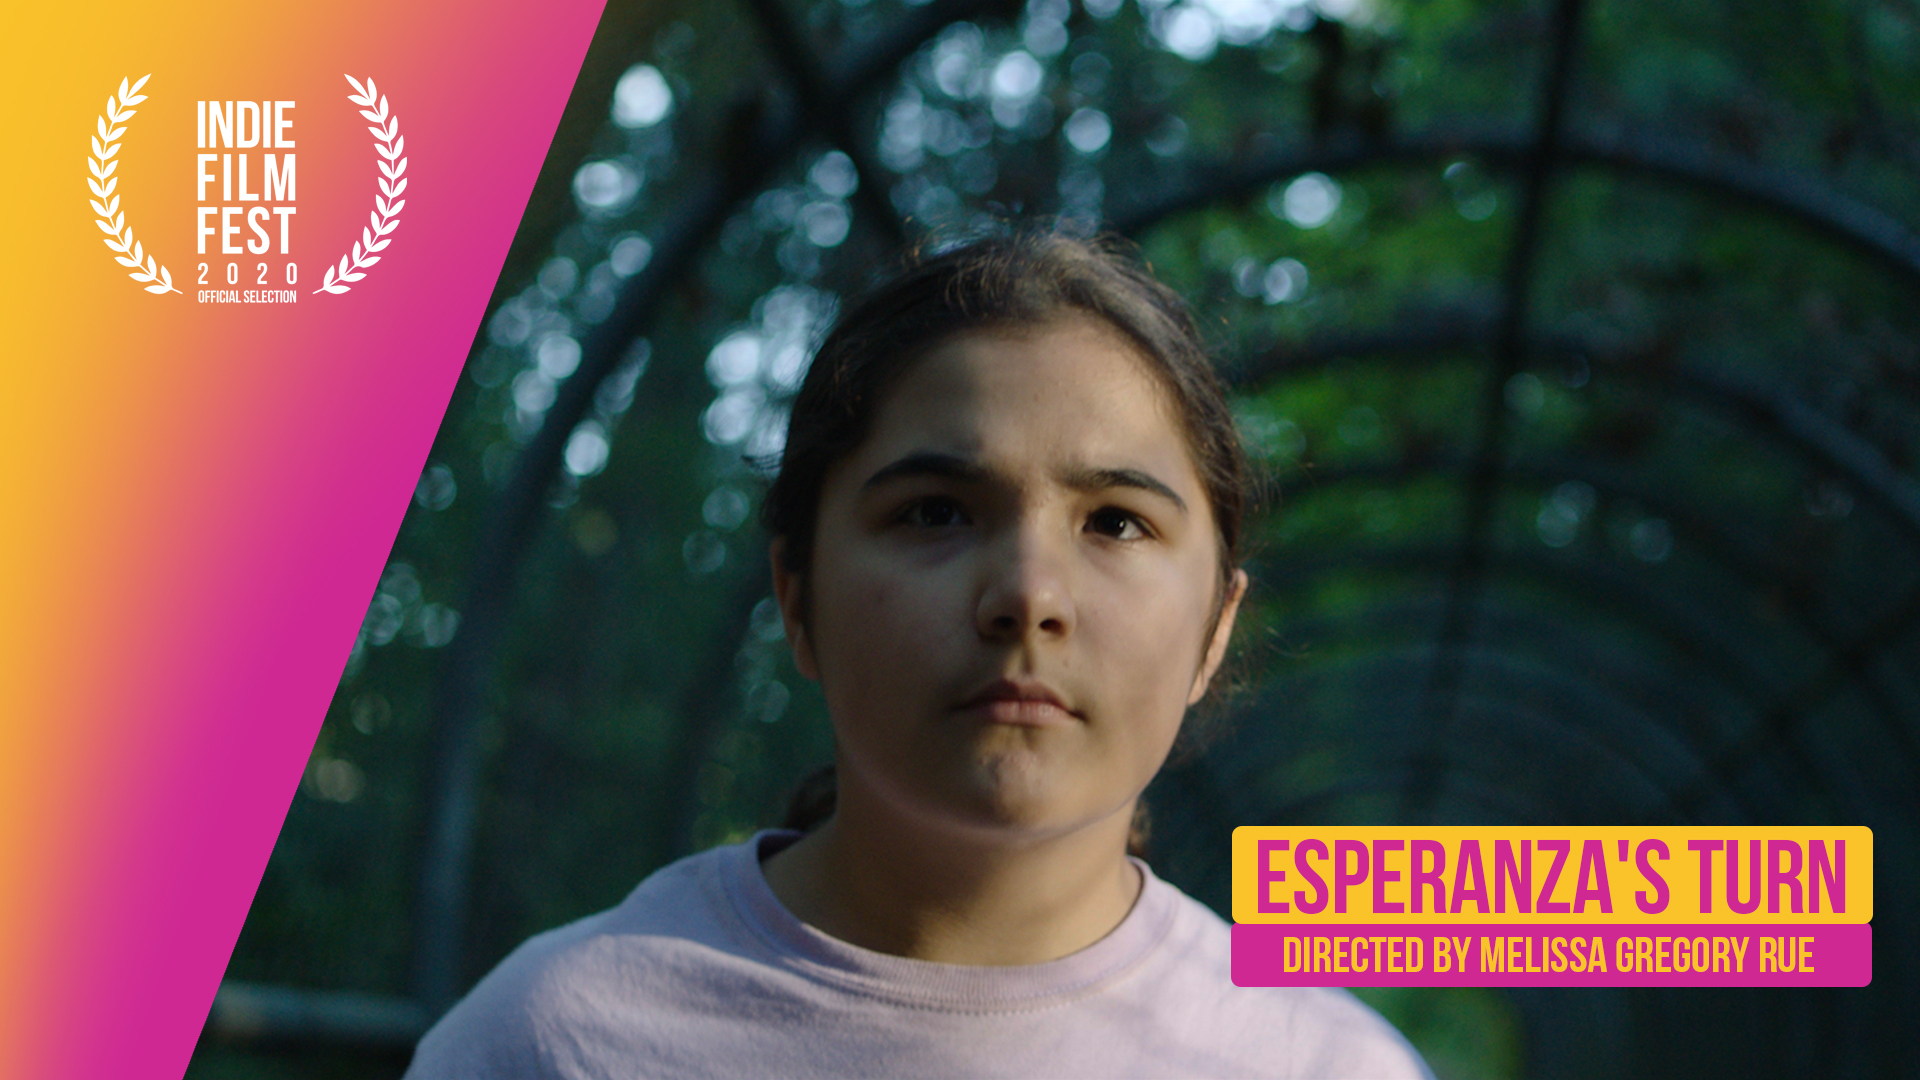 Esparanzasturn-officialselection